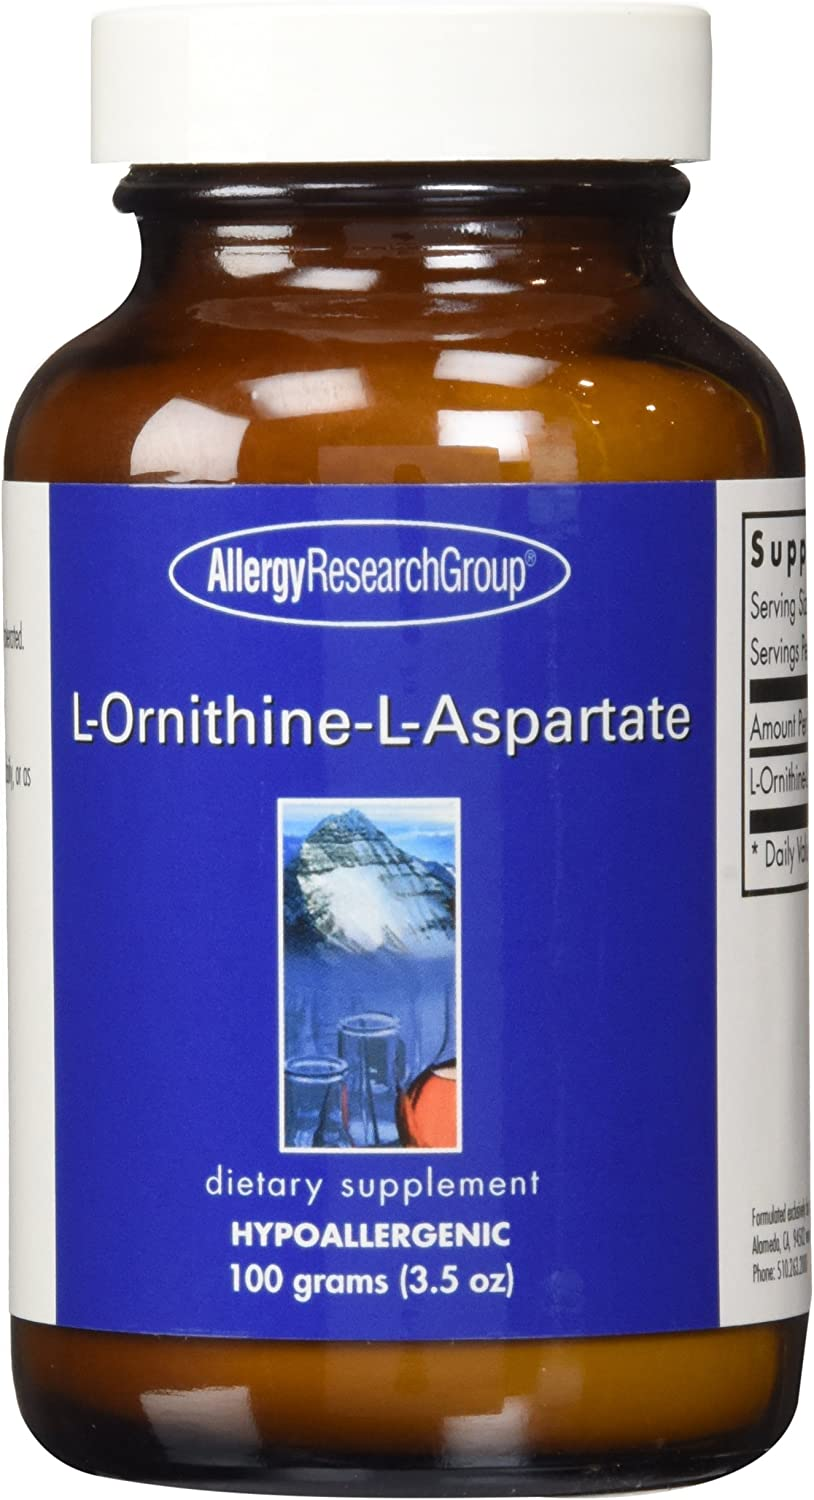 Allergy Research Group – L-Ornithine-L-Aspartate Powder – 100 g